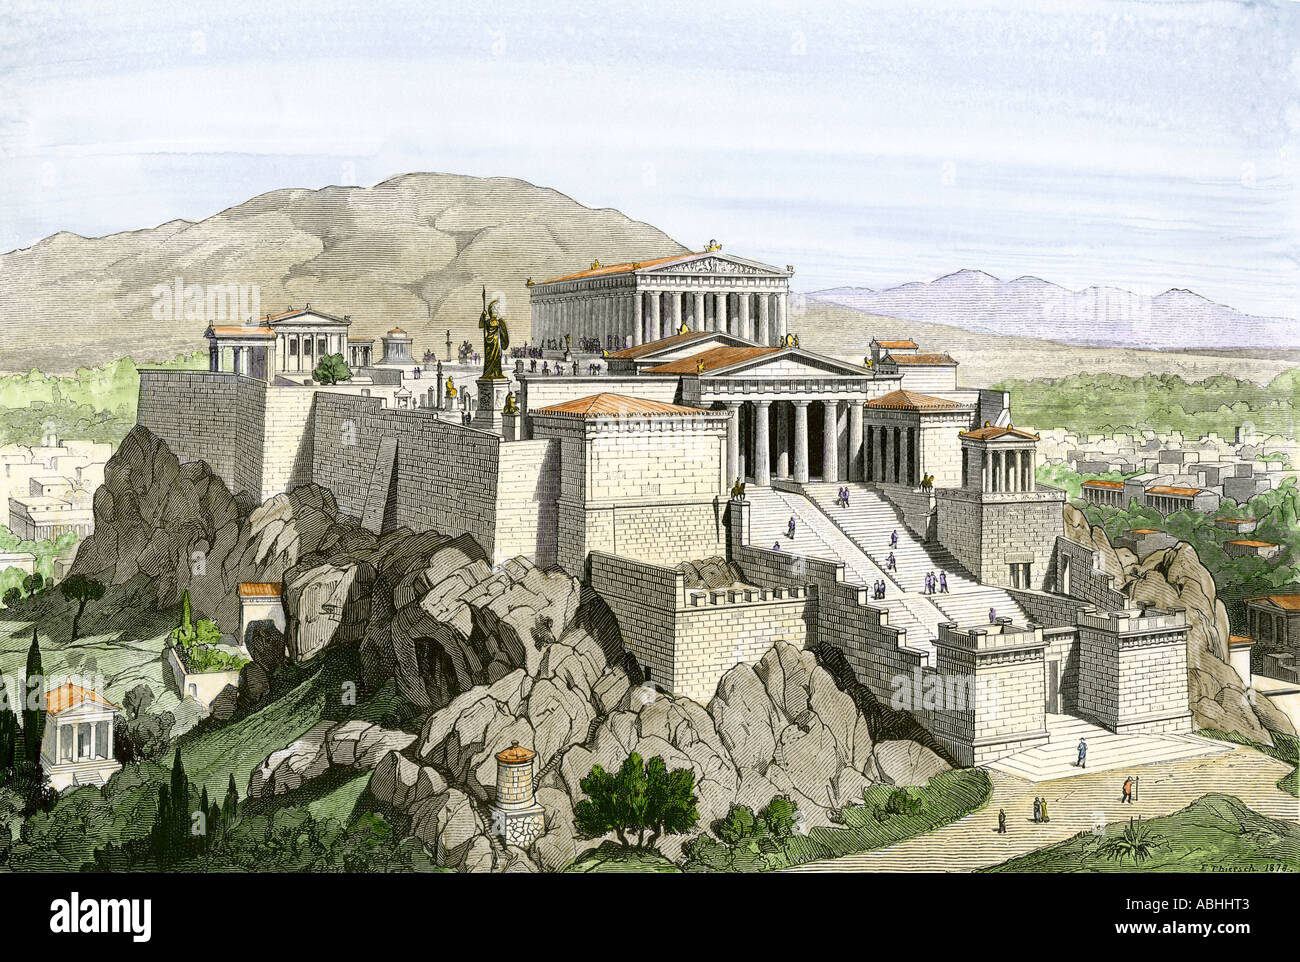 an introduction to the history of the athenian acropolis Troubled history capped with success when melina mercouri decided   exhibitions watch the short youtube introduction to the new acropolis museum  below.